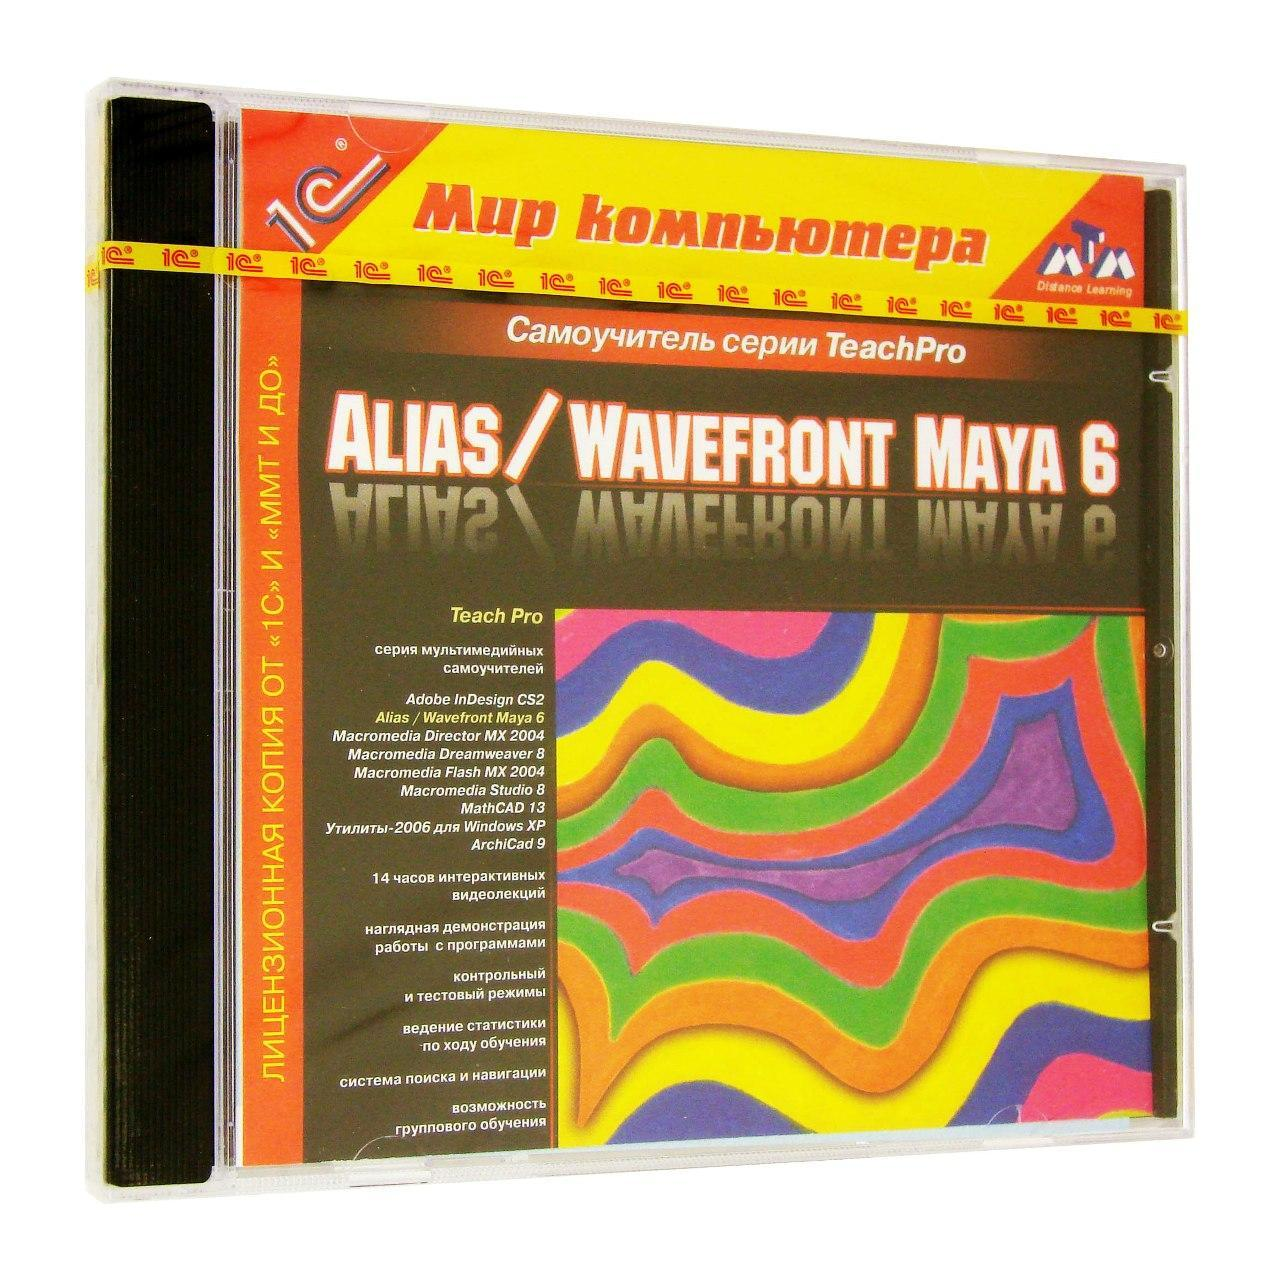 Alias / Wavefront Maya 6 TeachPro (PC)